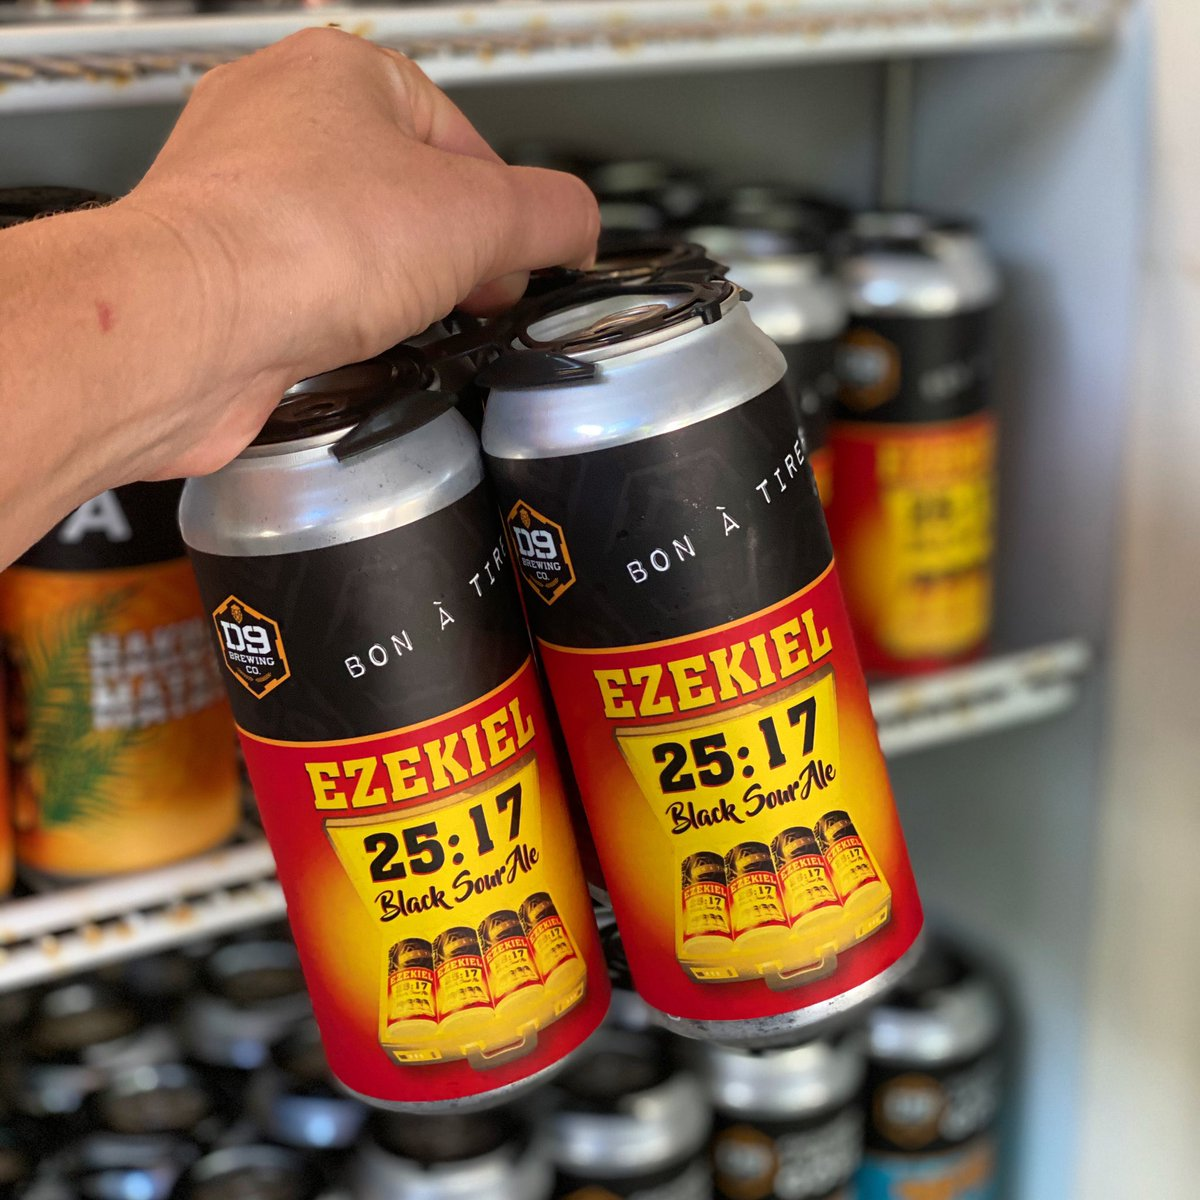 We've got limited quantities of Ezekiel 25:17 Black Sour Ale in the taproom. We absolutely love all sweetness of the candi sugar, date molasses, and honey malt and that puckering tart at the end. It's the perfect day for a black sour 🍻 Cheers #cltbeers https://t.co/tHTLQ6PoGg